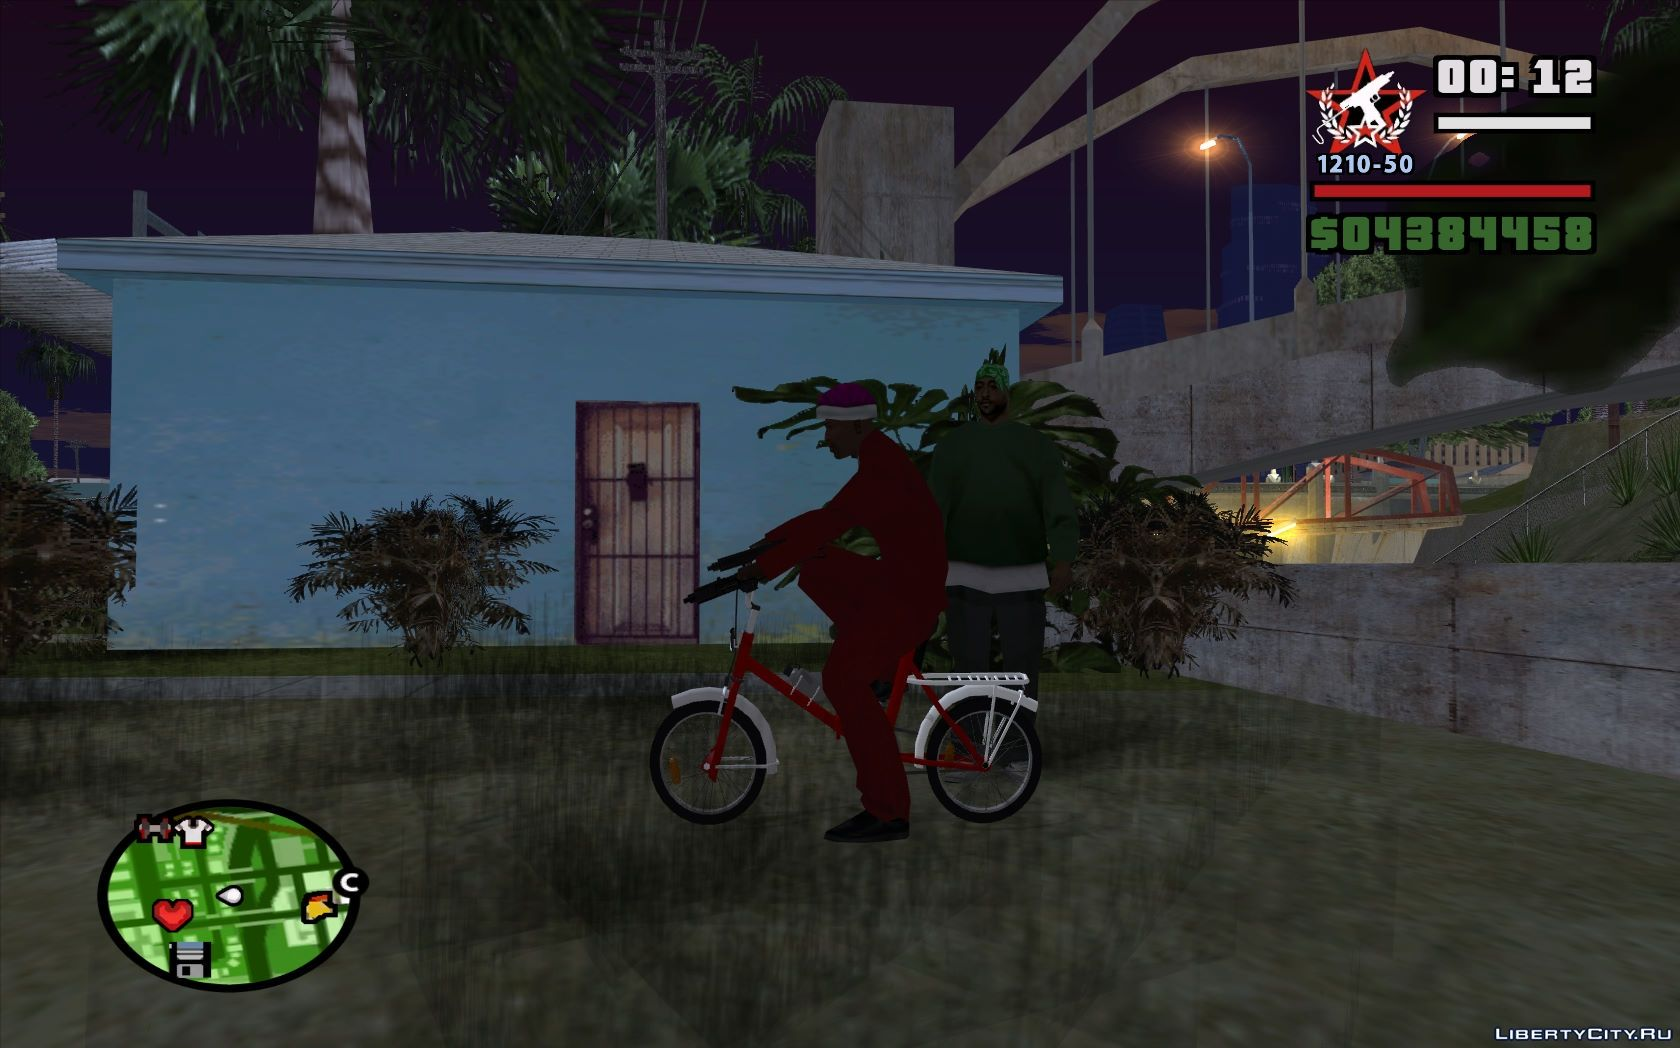 Lowrider bicycle is a new mod for gta: san andreas